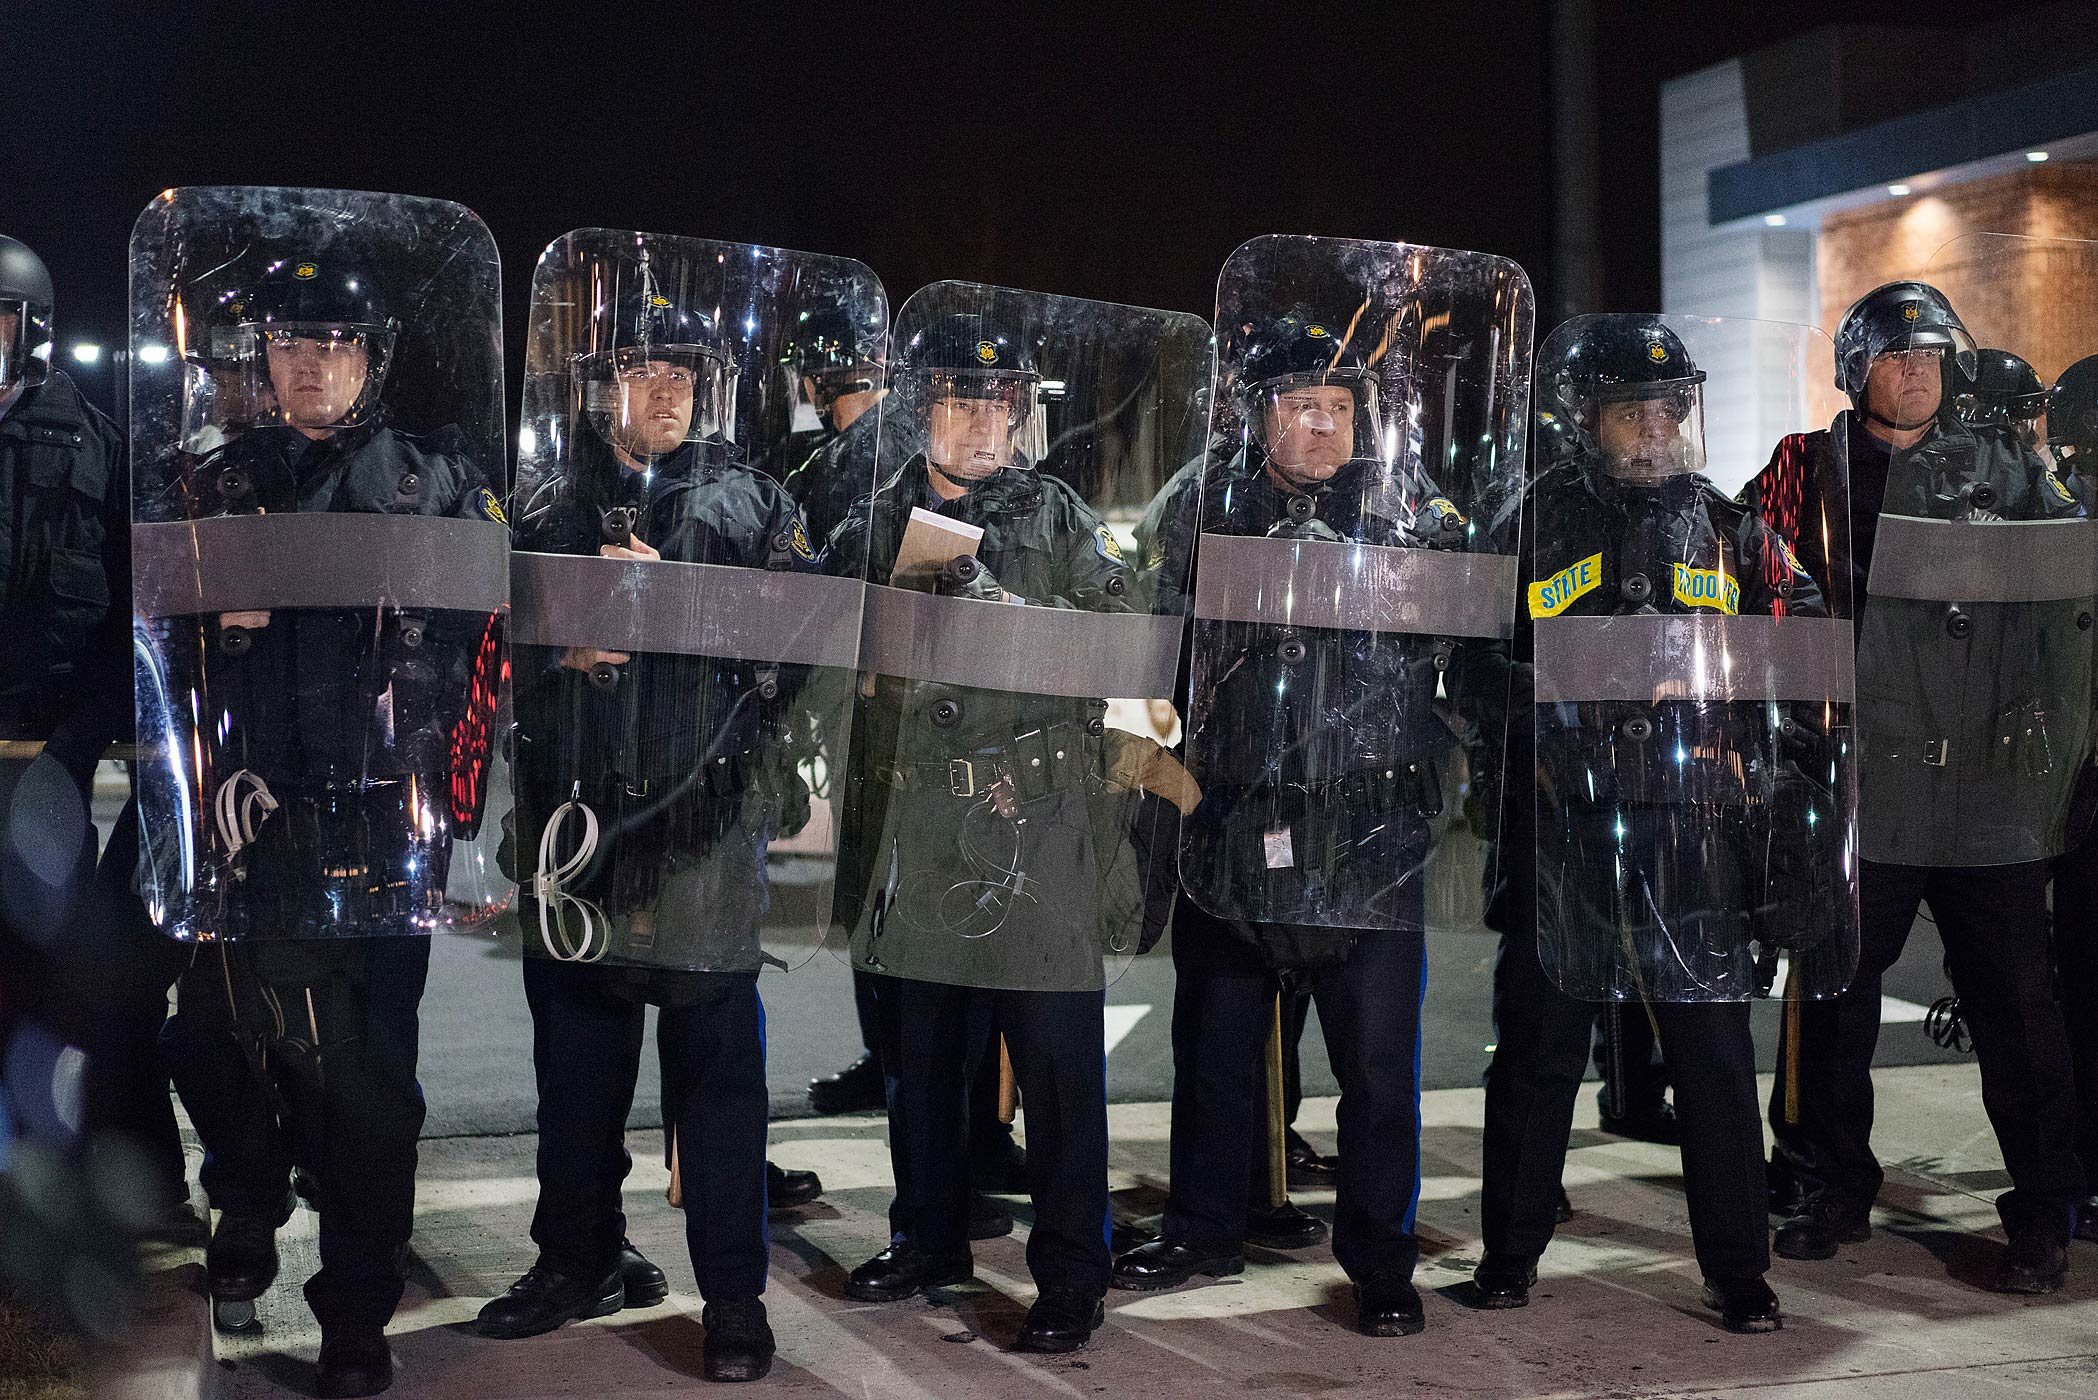 Police officers in riot gear stand guard in Ferguson, Mo. on Nov. 24, 2014